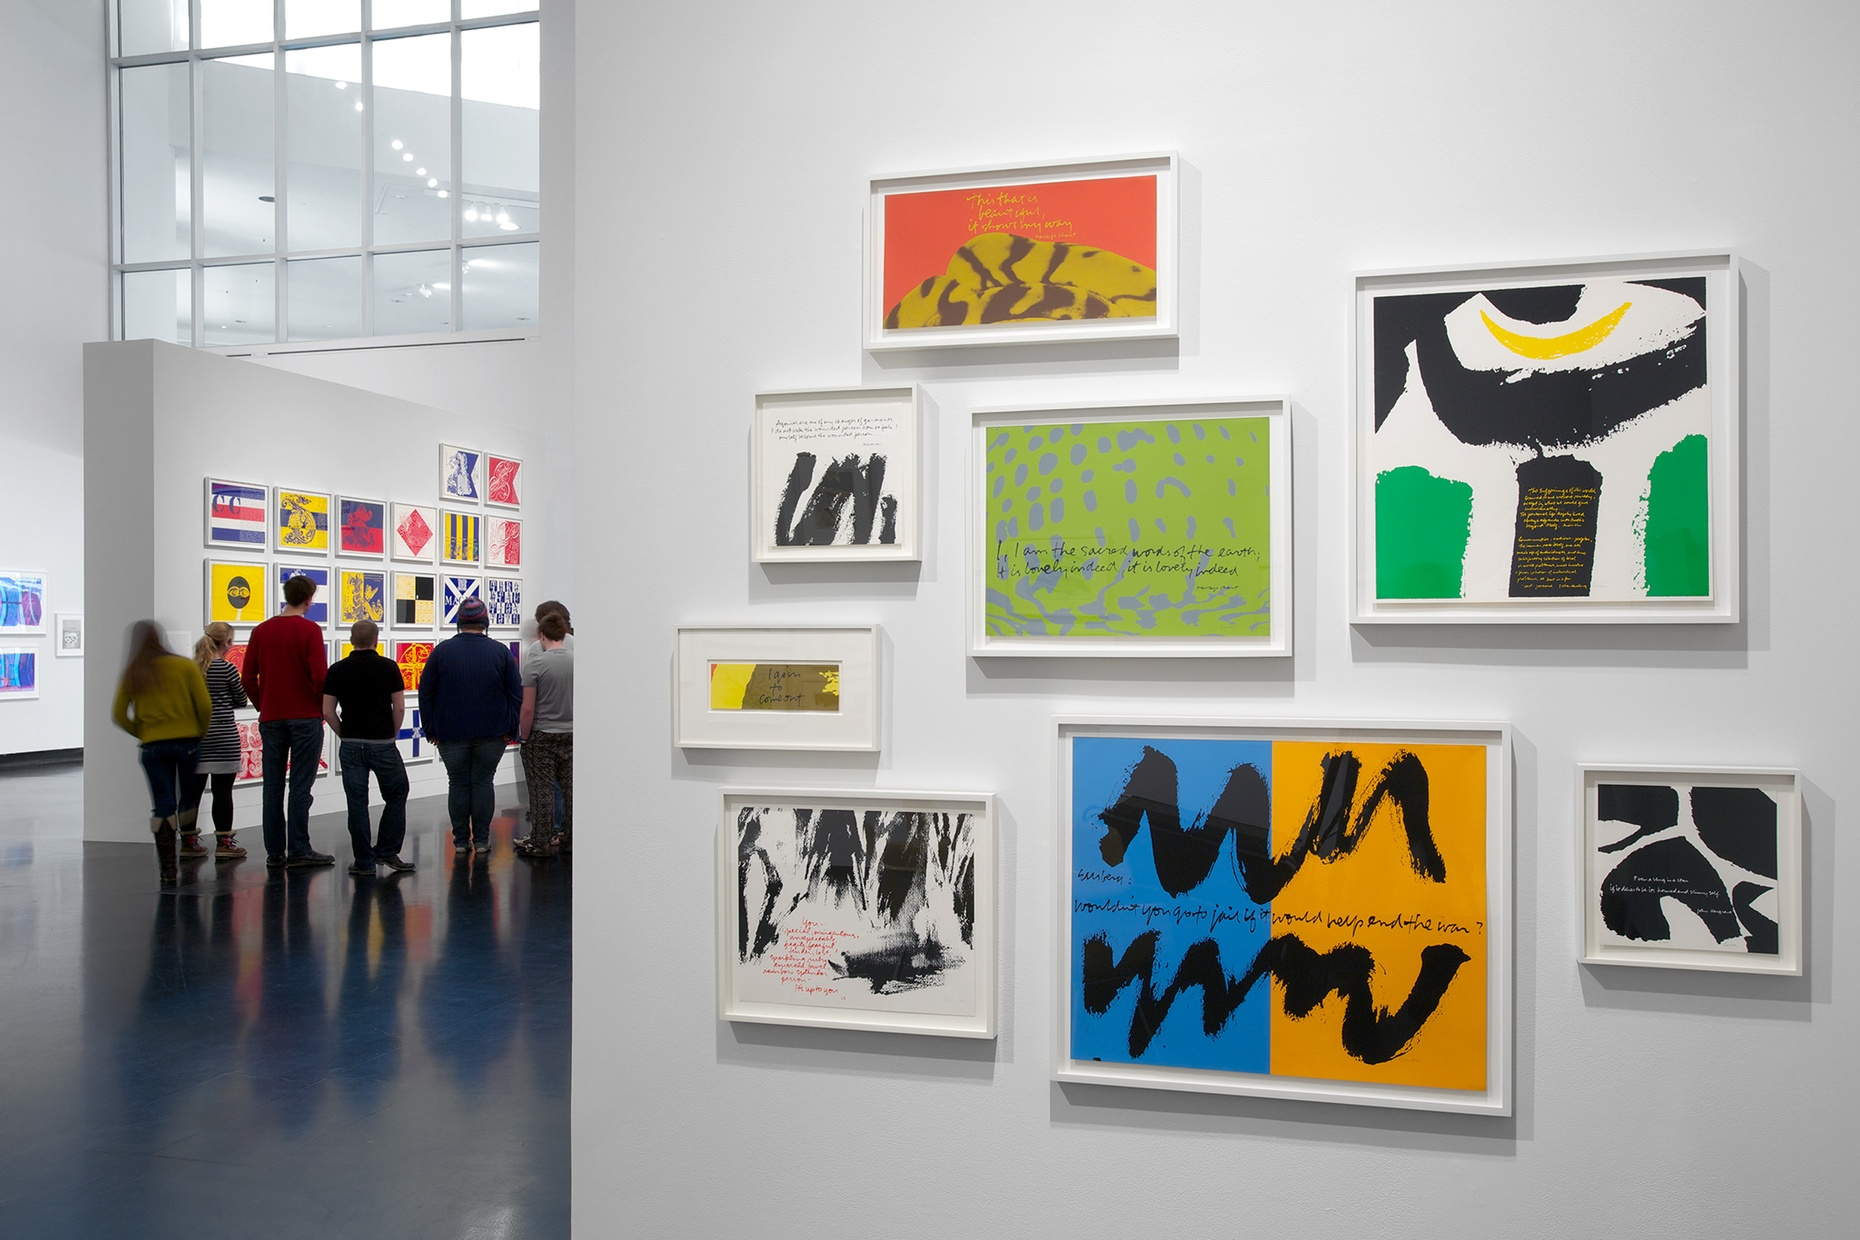 Eight colorful screen prints hung on a white wall with a group of people visible in the background.